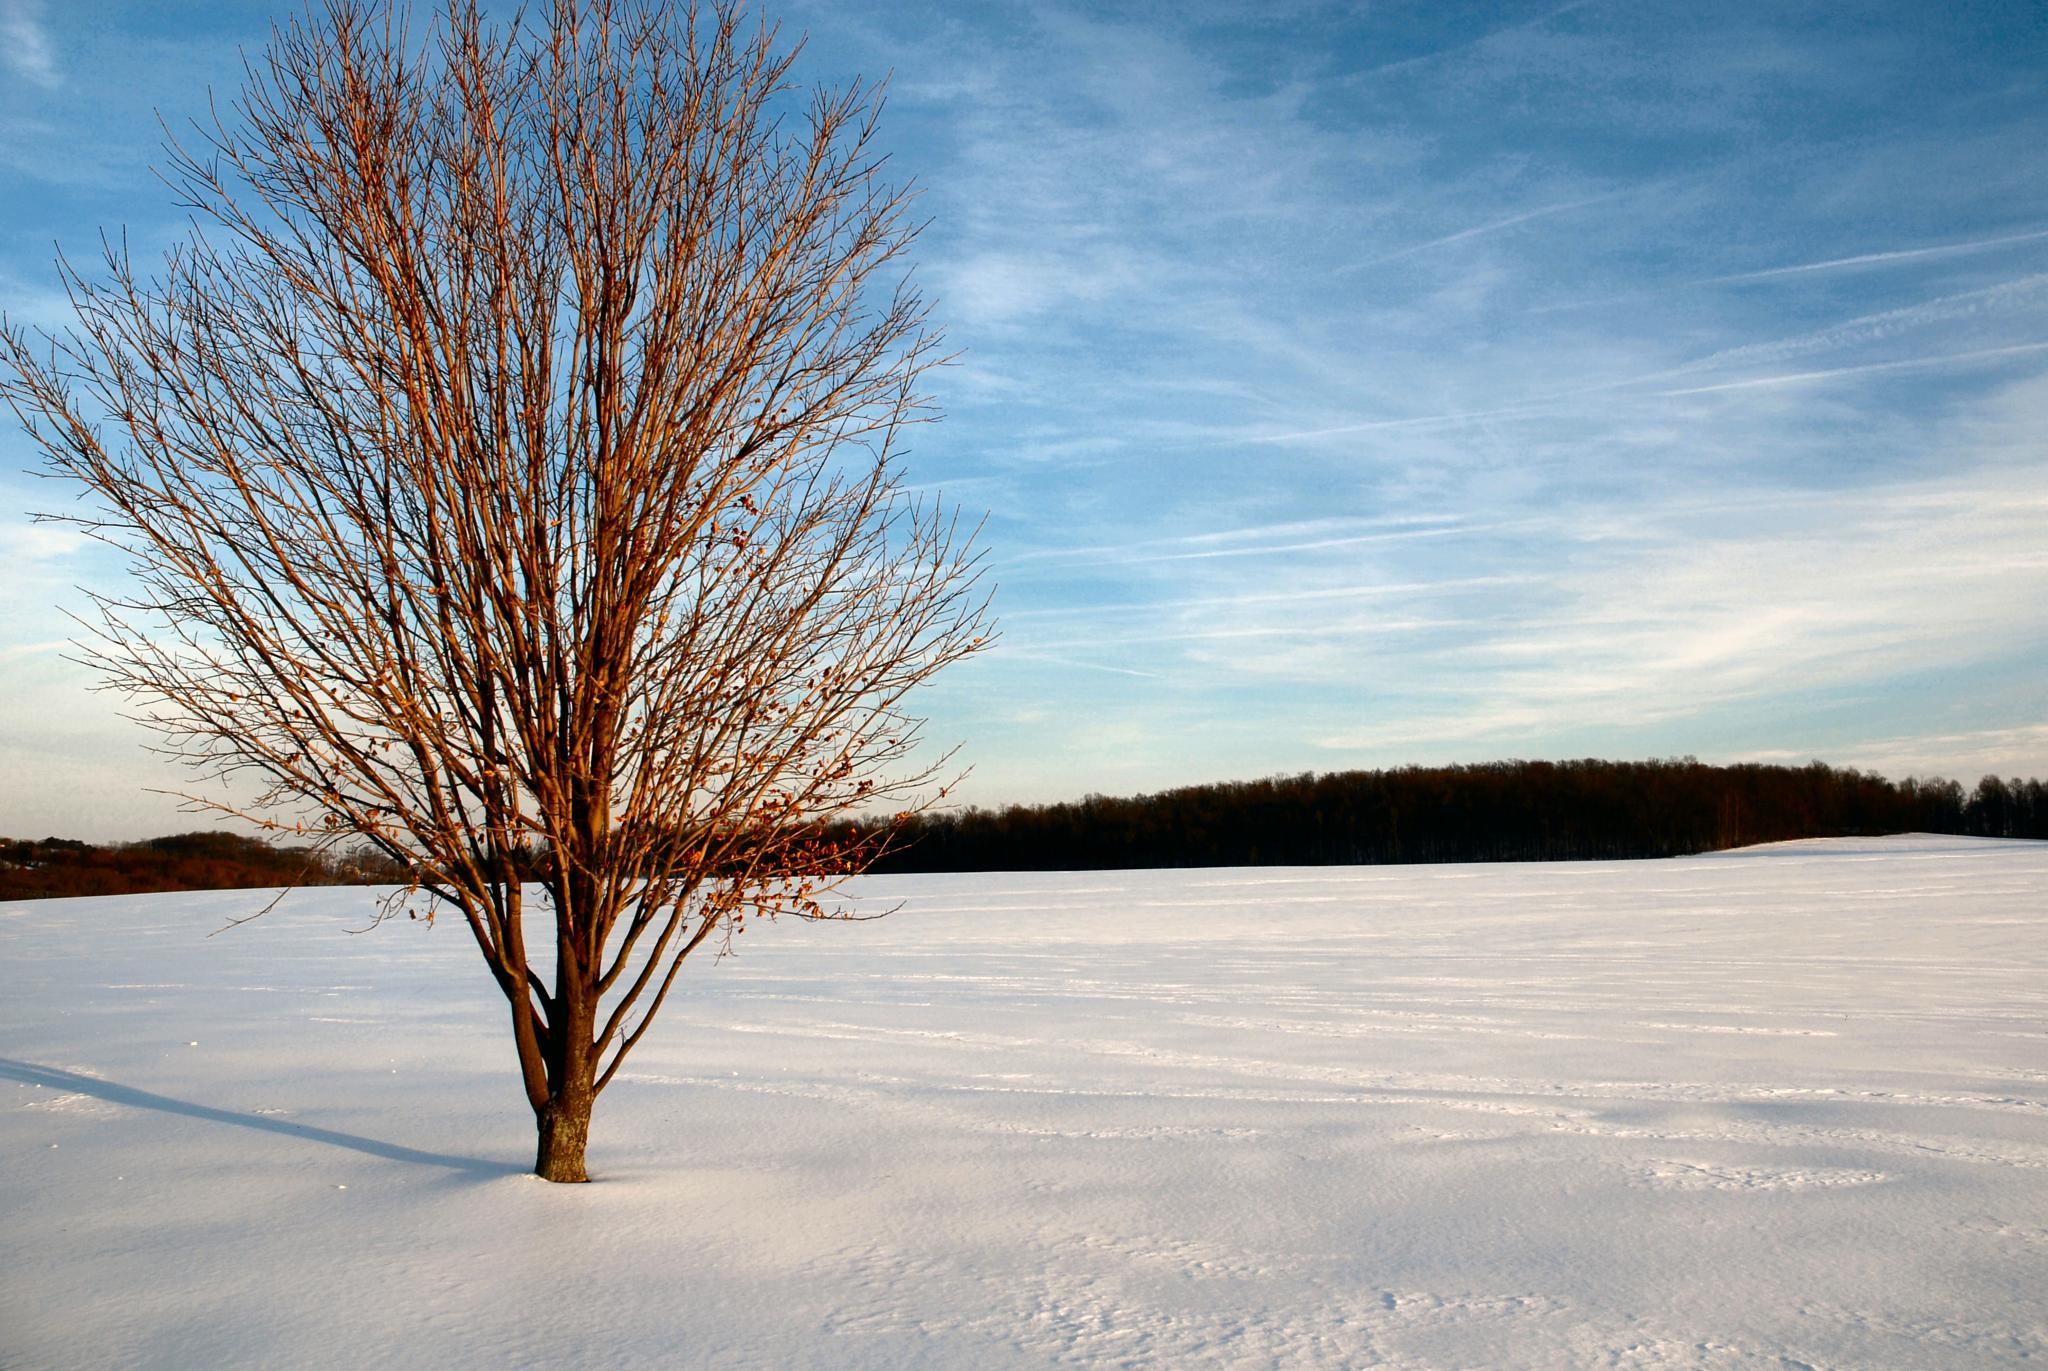 Tree in Snow Covered Field by JeffViaPhotography